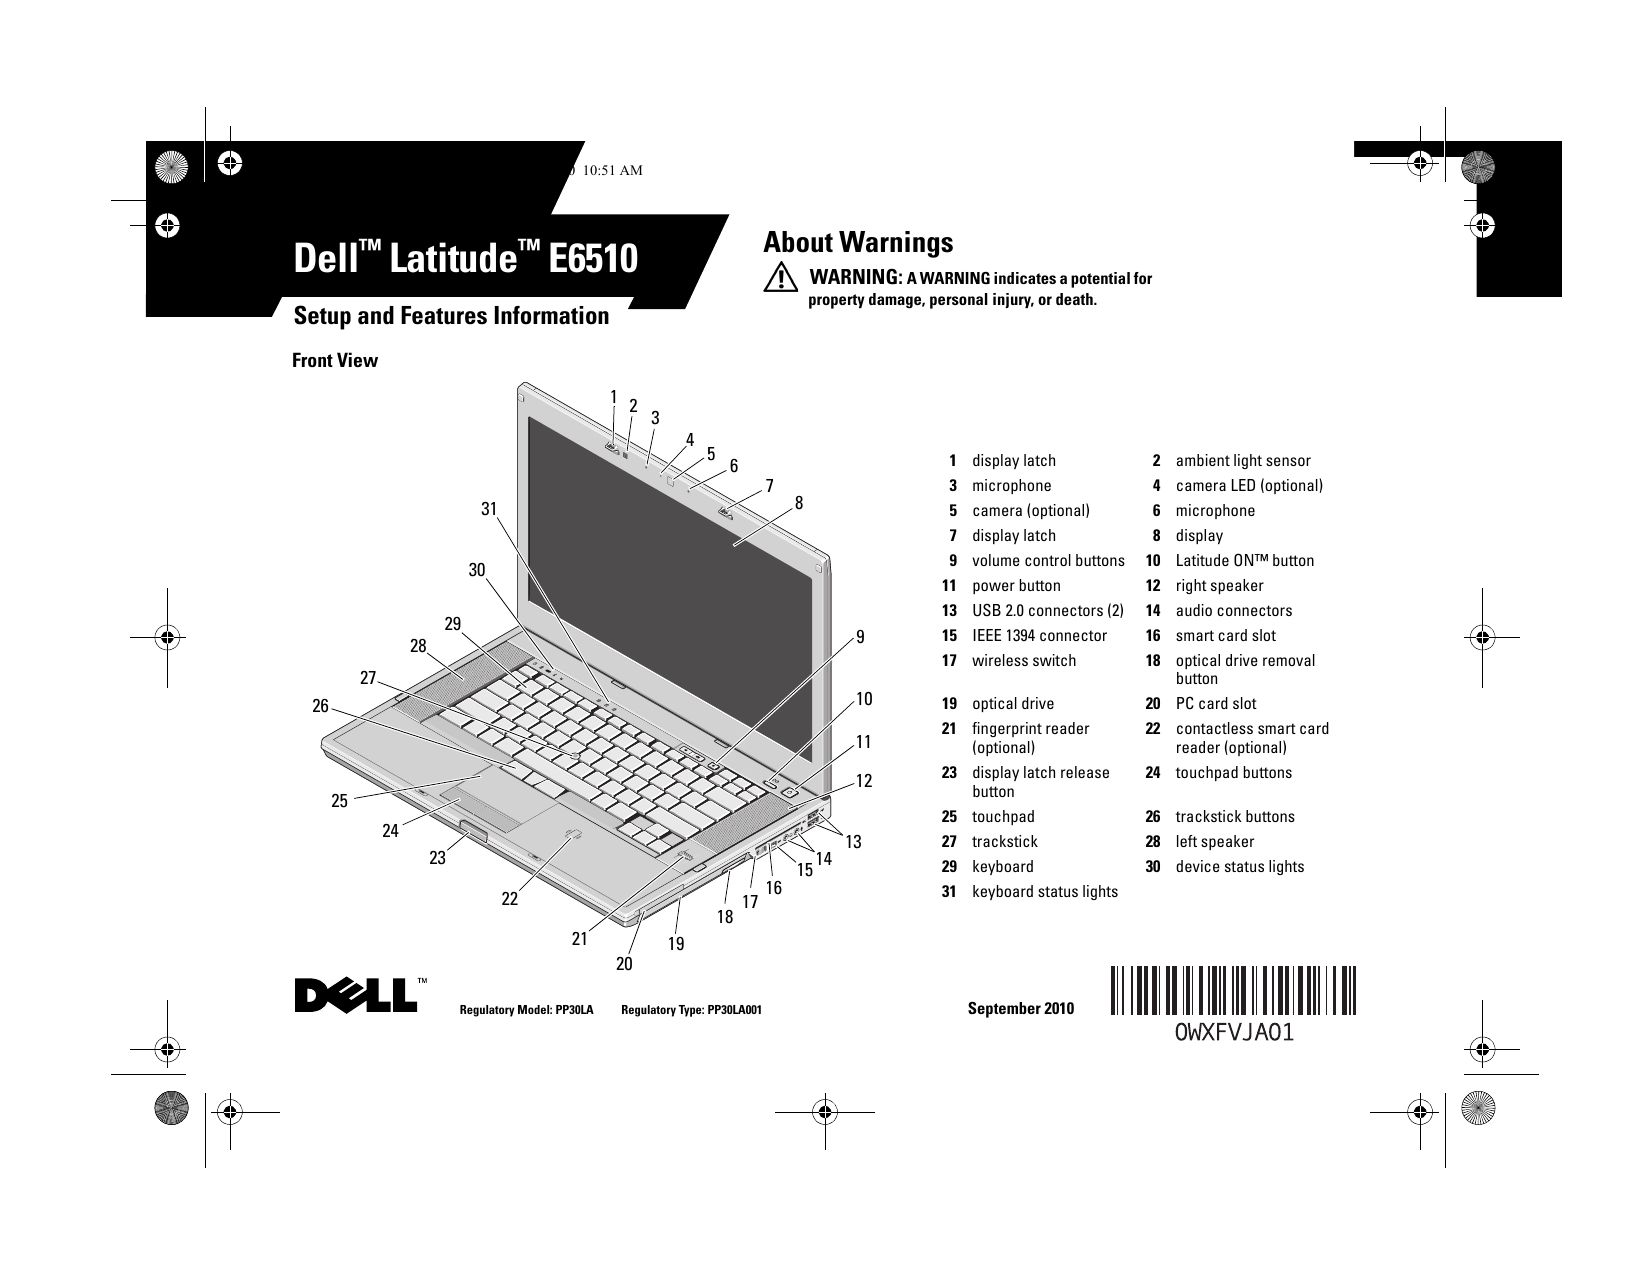 dell latitude e6510 early 2010 owner s manual free pdf download rh manualagent com dell latitude e6520 manual dell latitude e6540 manual